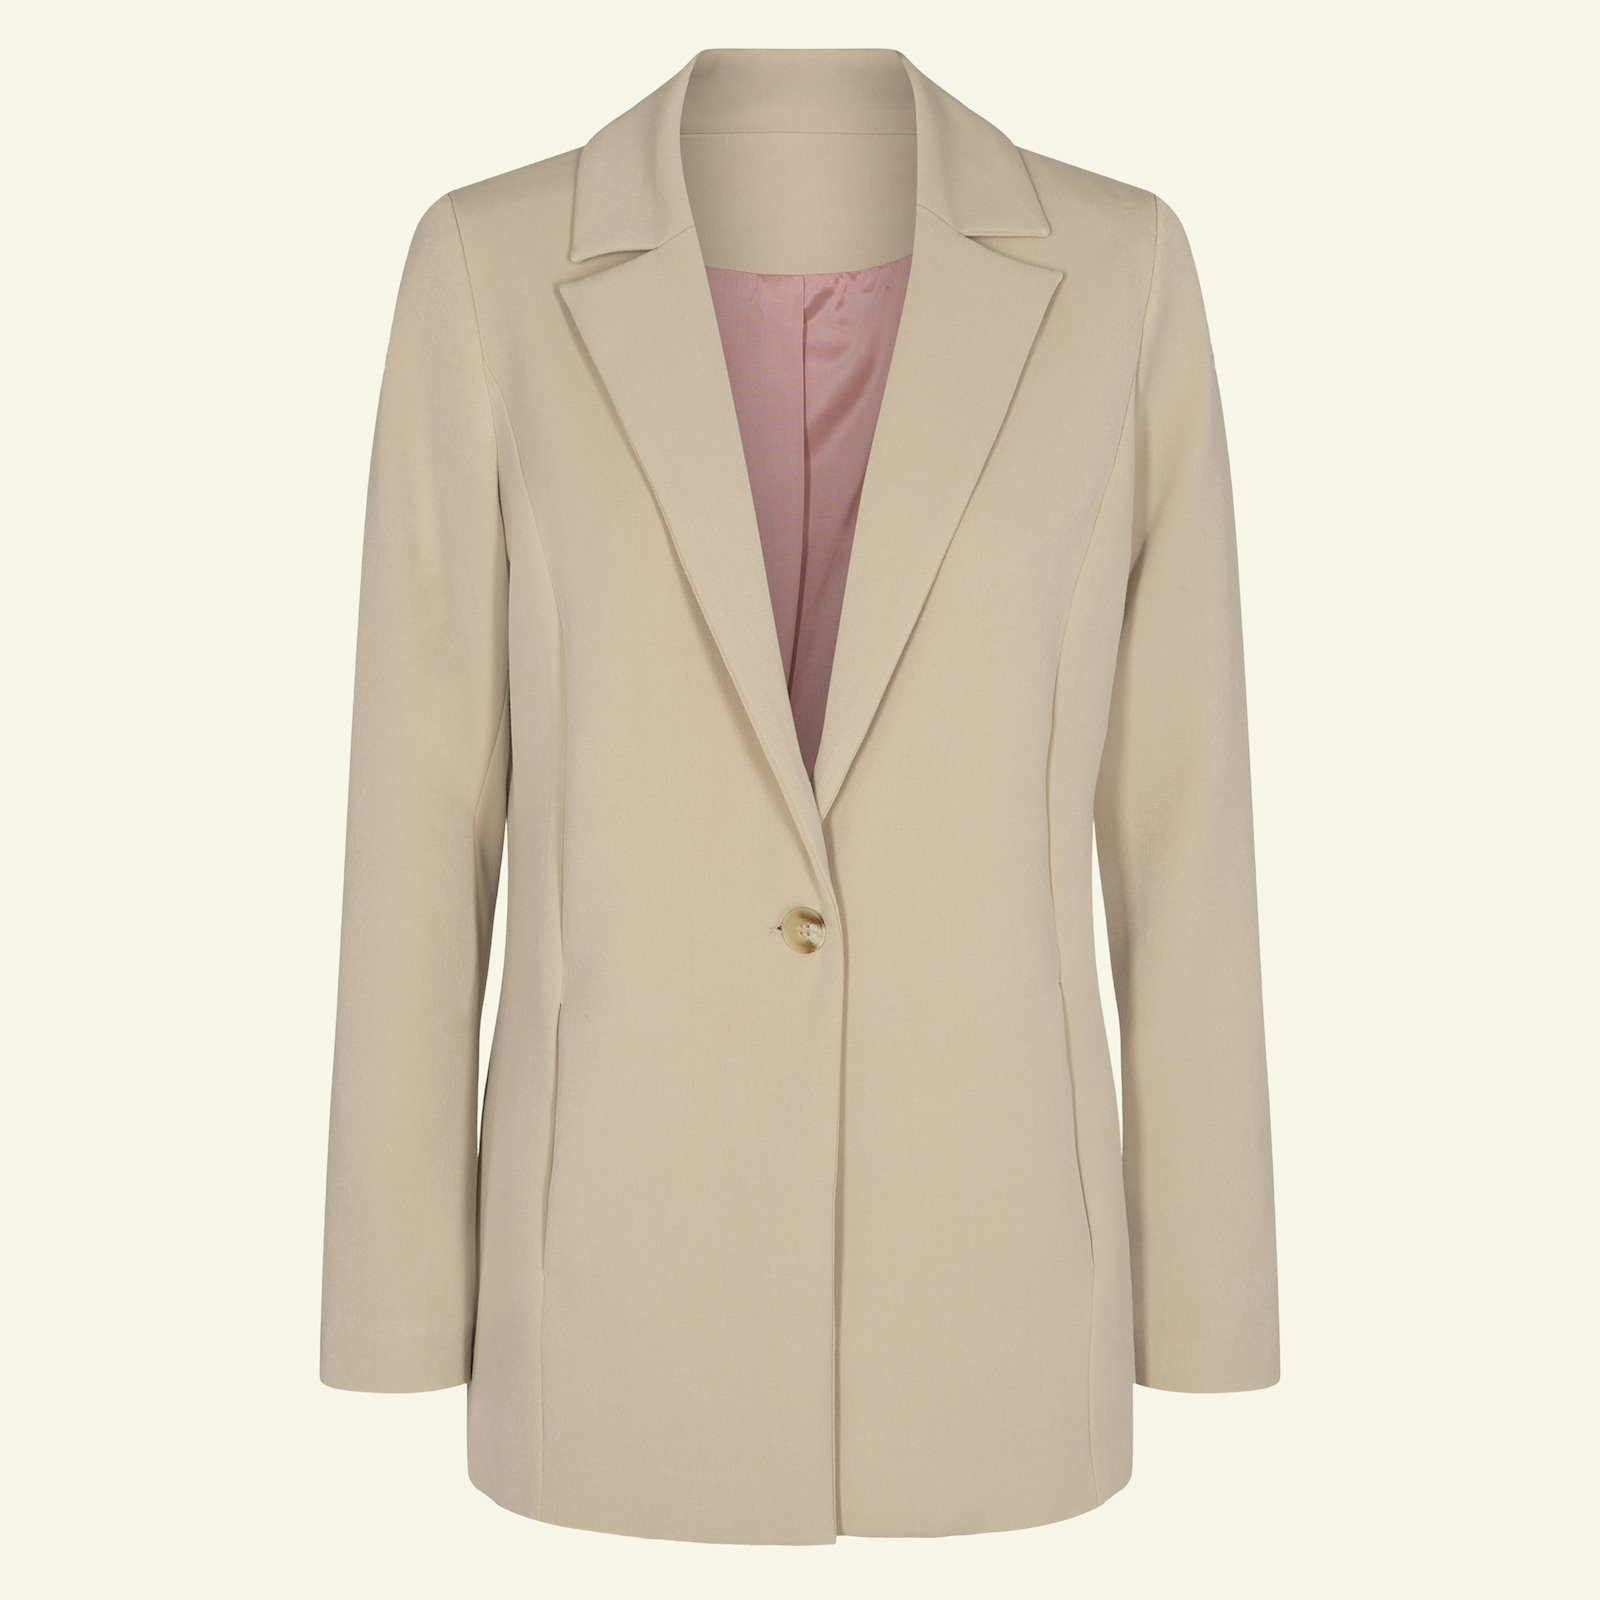 Suit jacket with lining p24048_460857_5050_40240_sskit